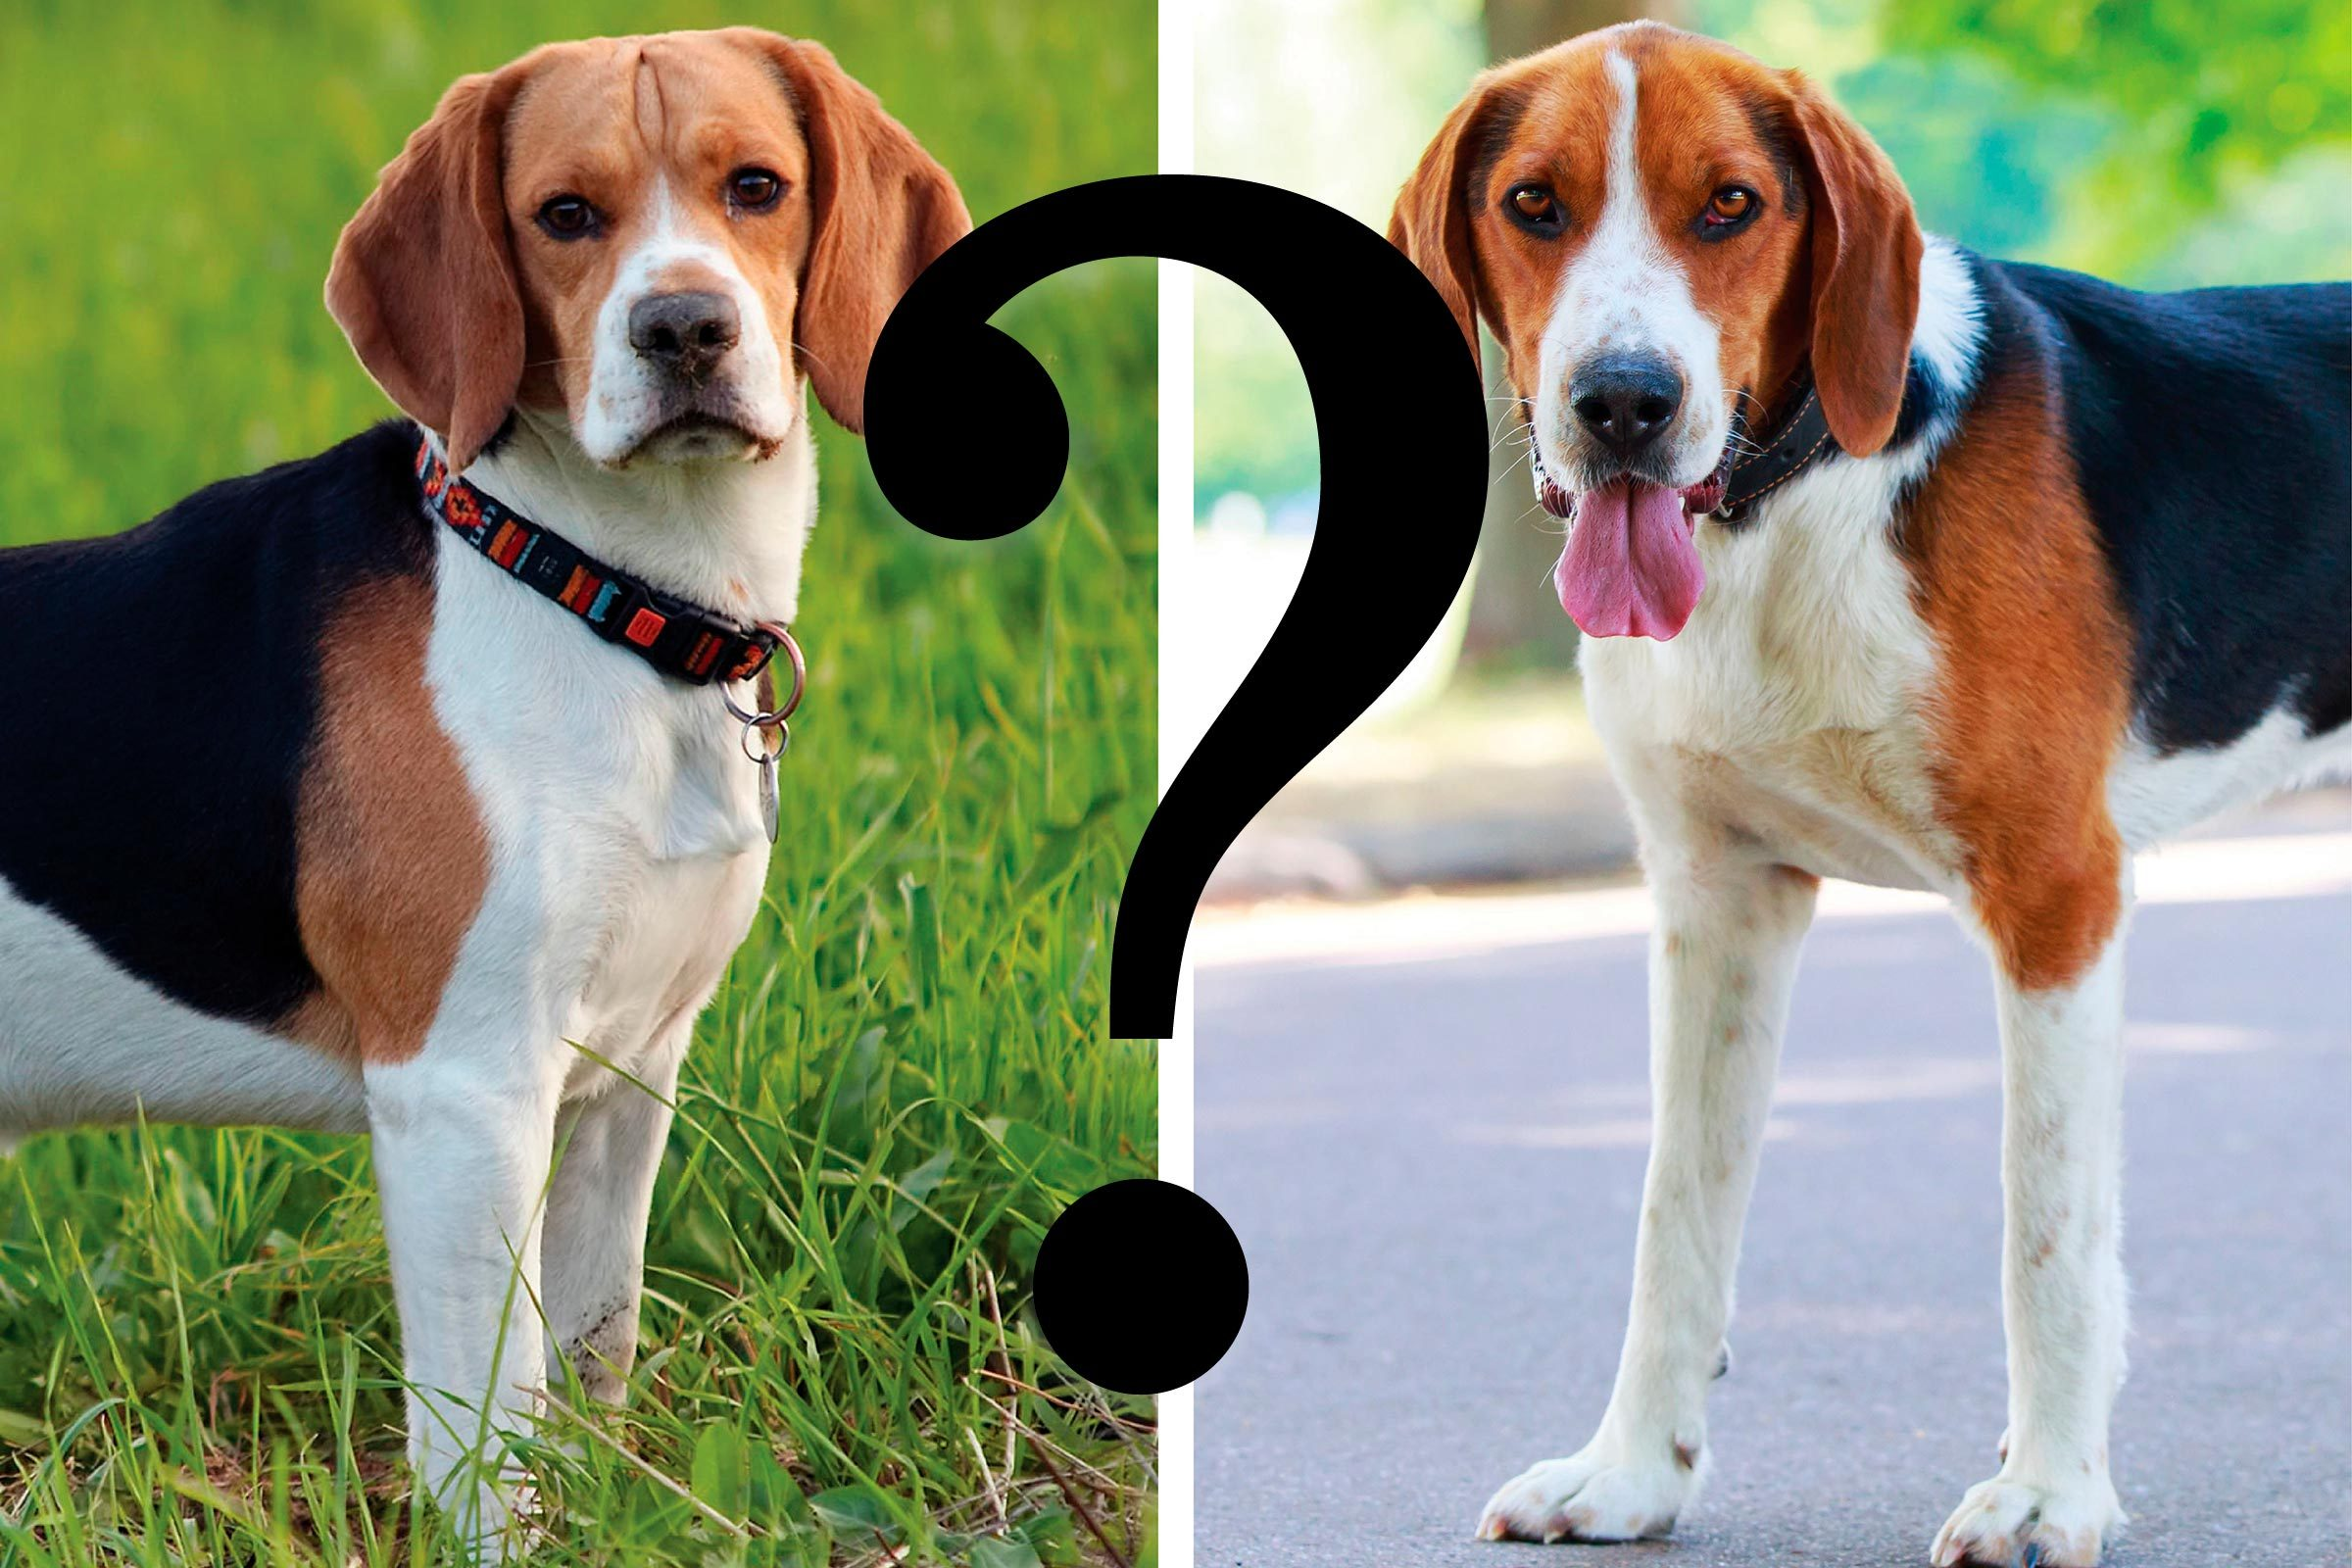 similar dog breeds side by side with a question mark